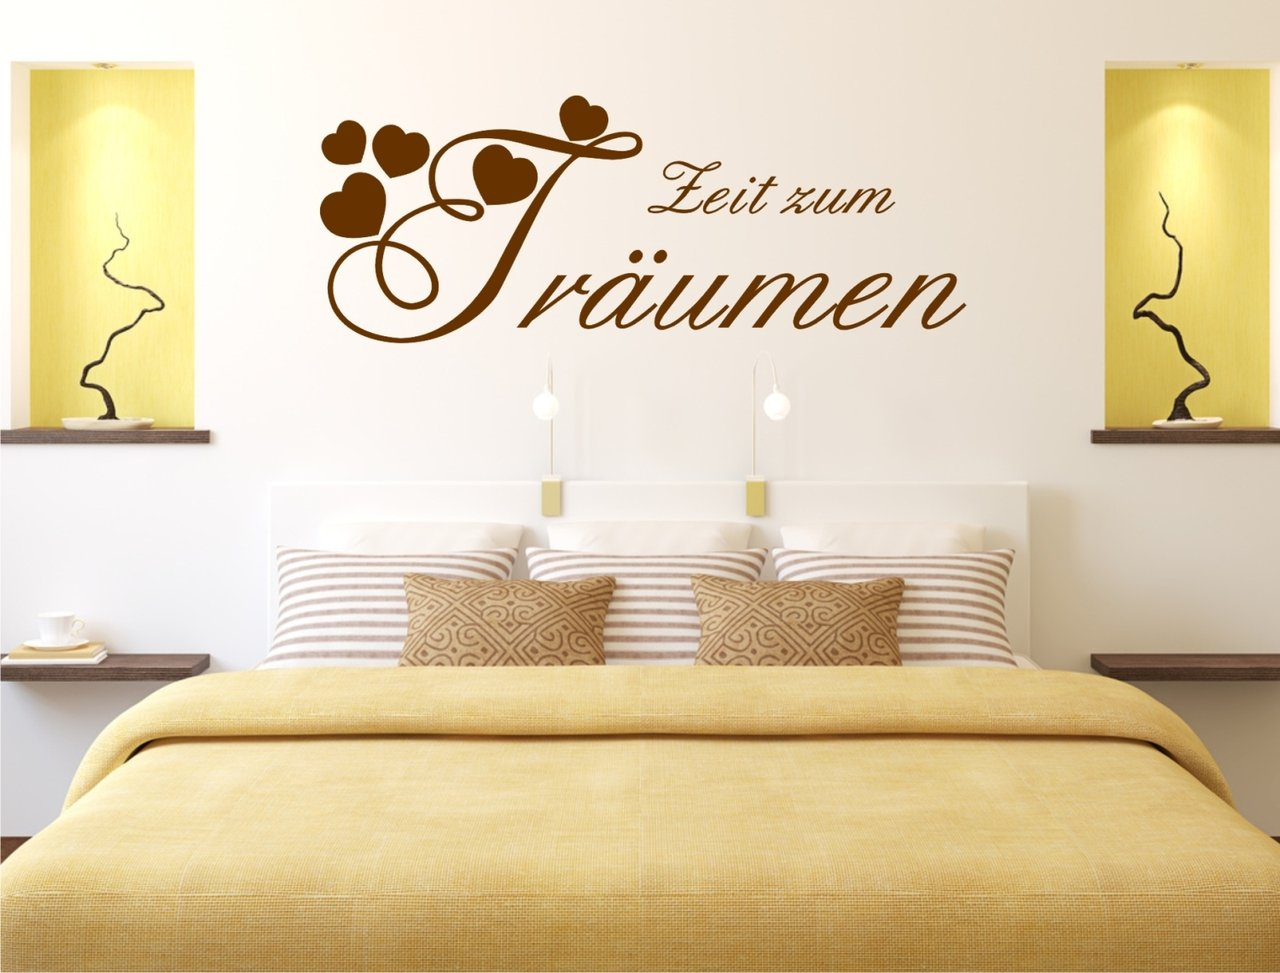 zeit zum tr umen wandtattoo f r ihr schlafzimmer. Black Bedroom Furniture Sets. Home Design Ideas